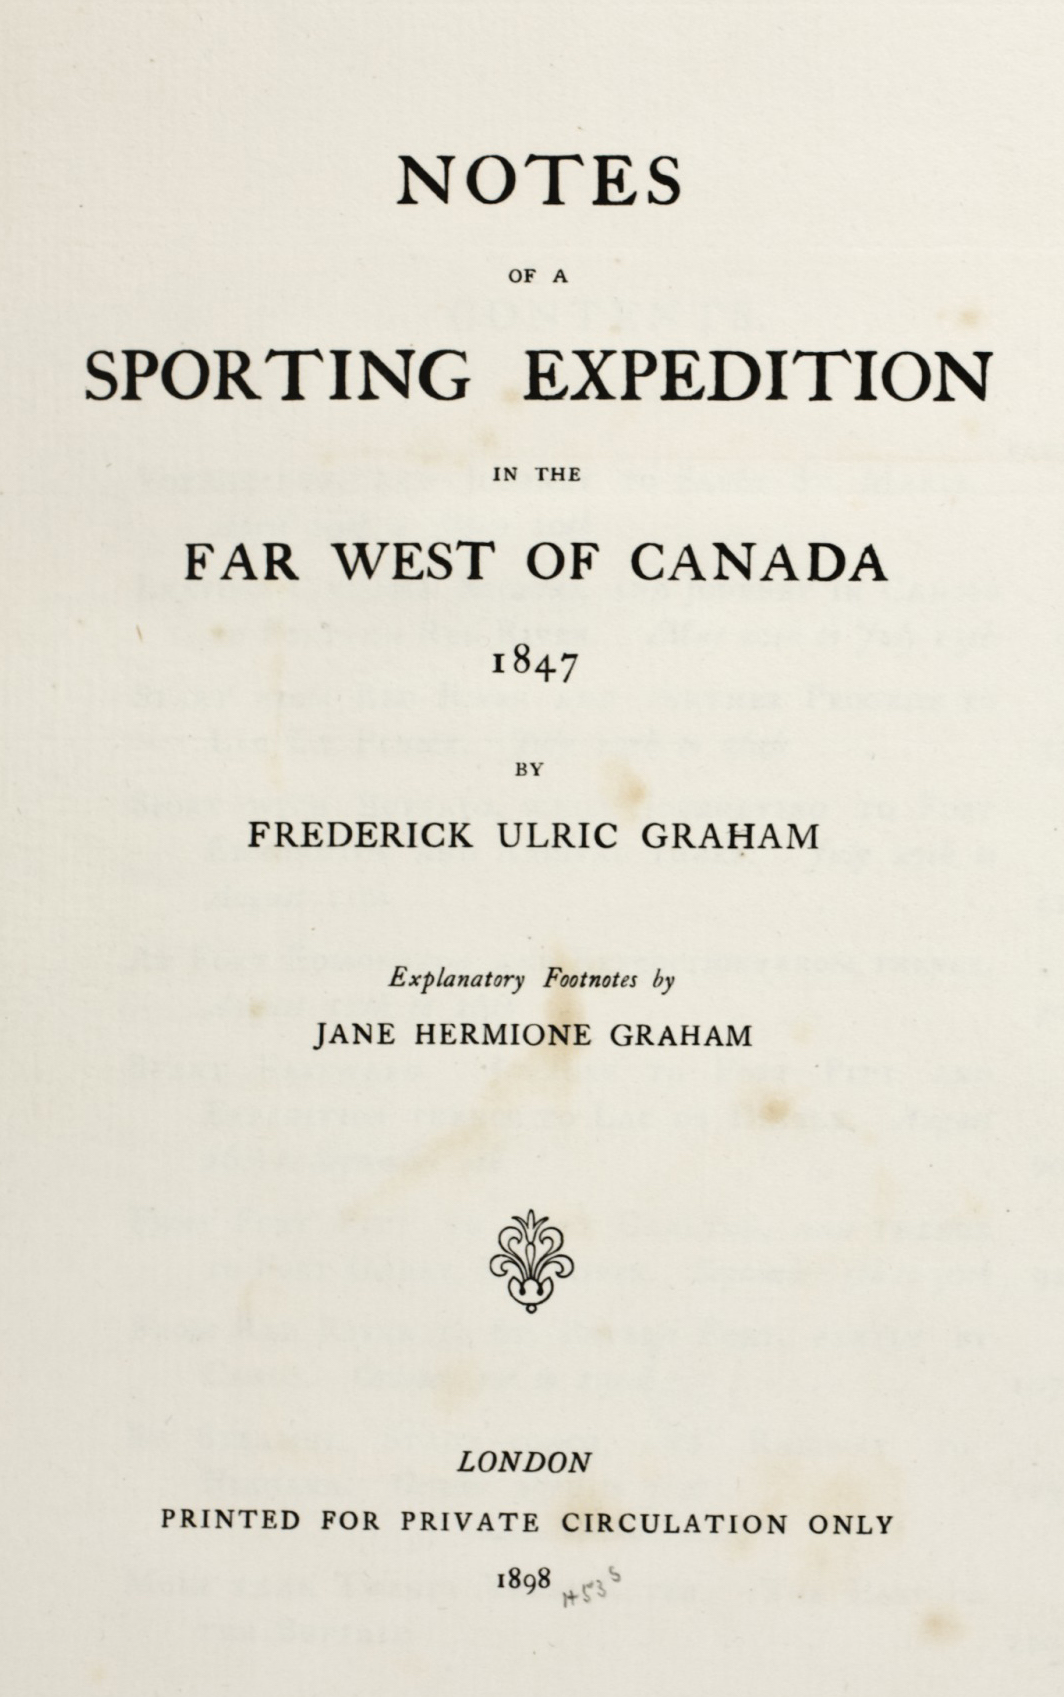 Notes of a Sporting Expedition in the Far West of Canada (1898)